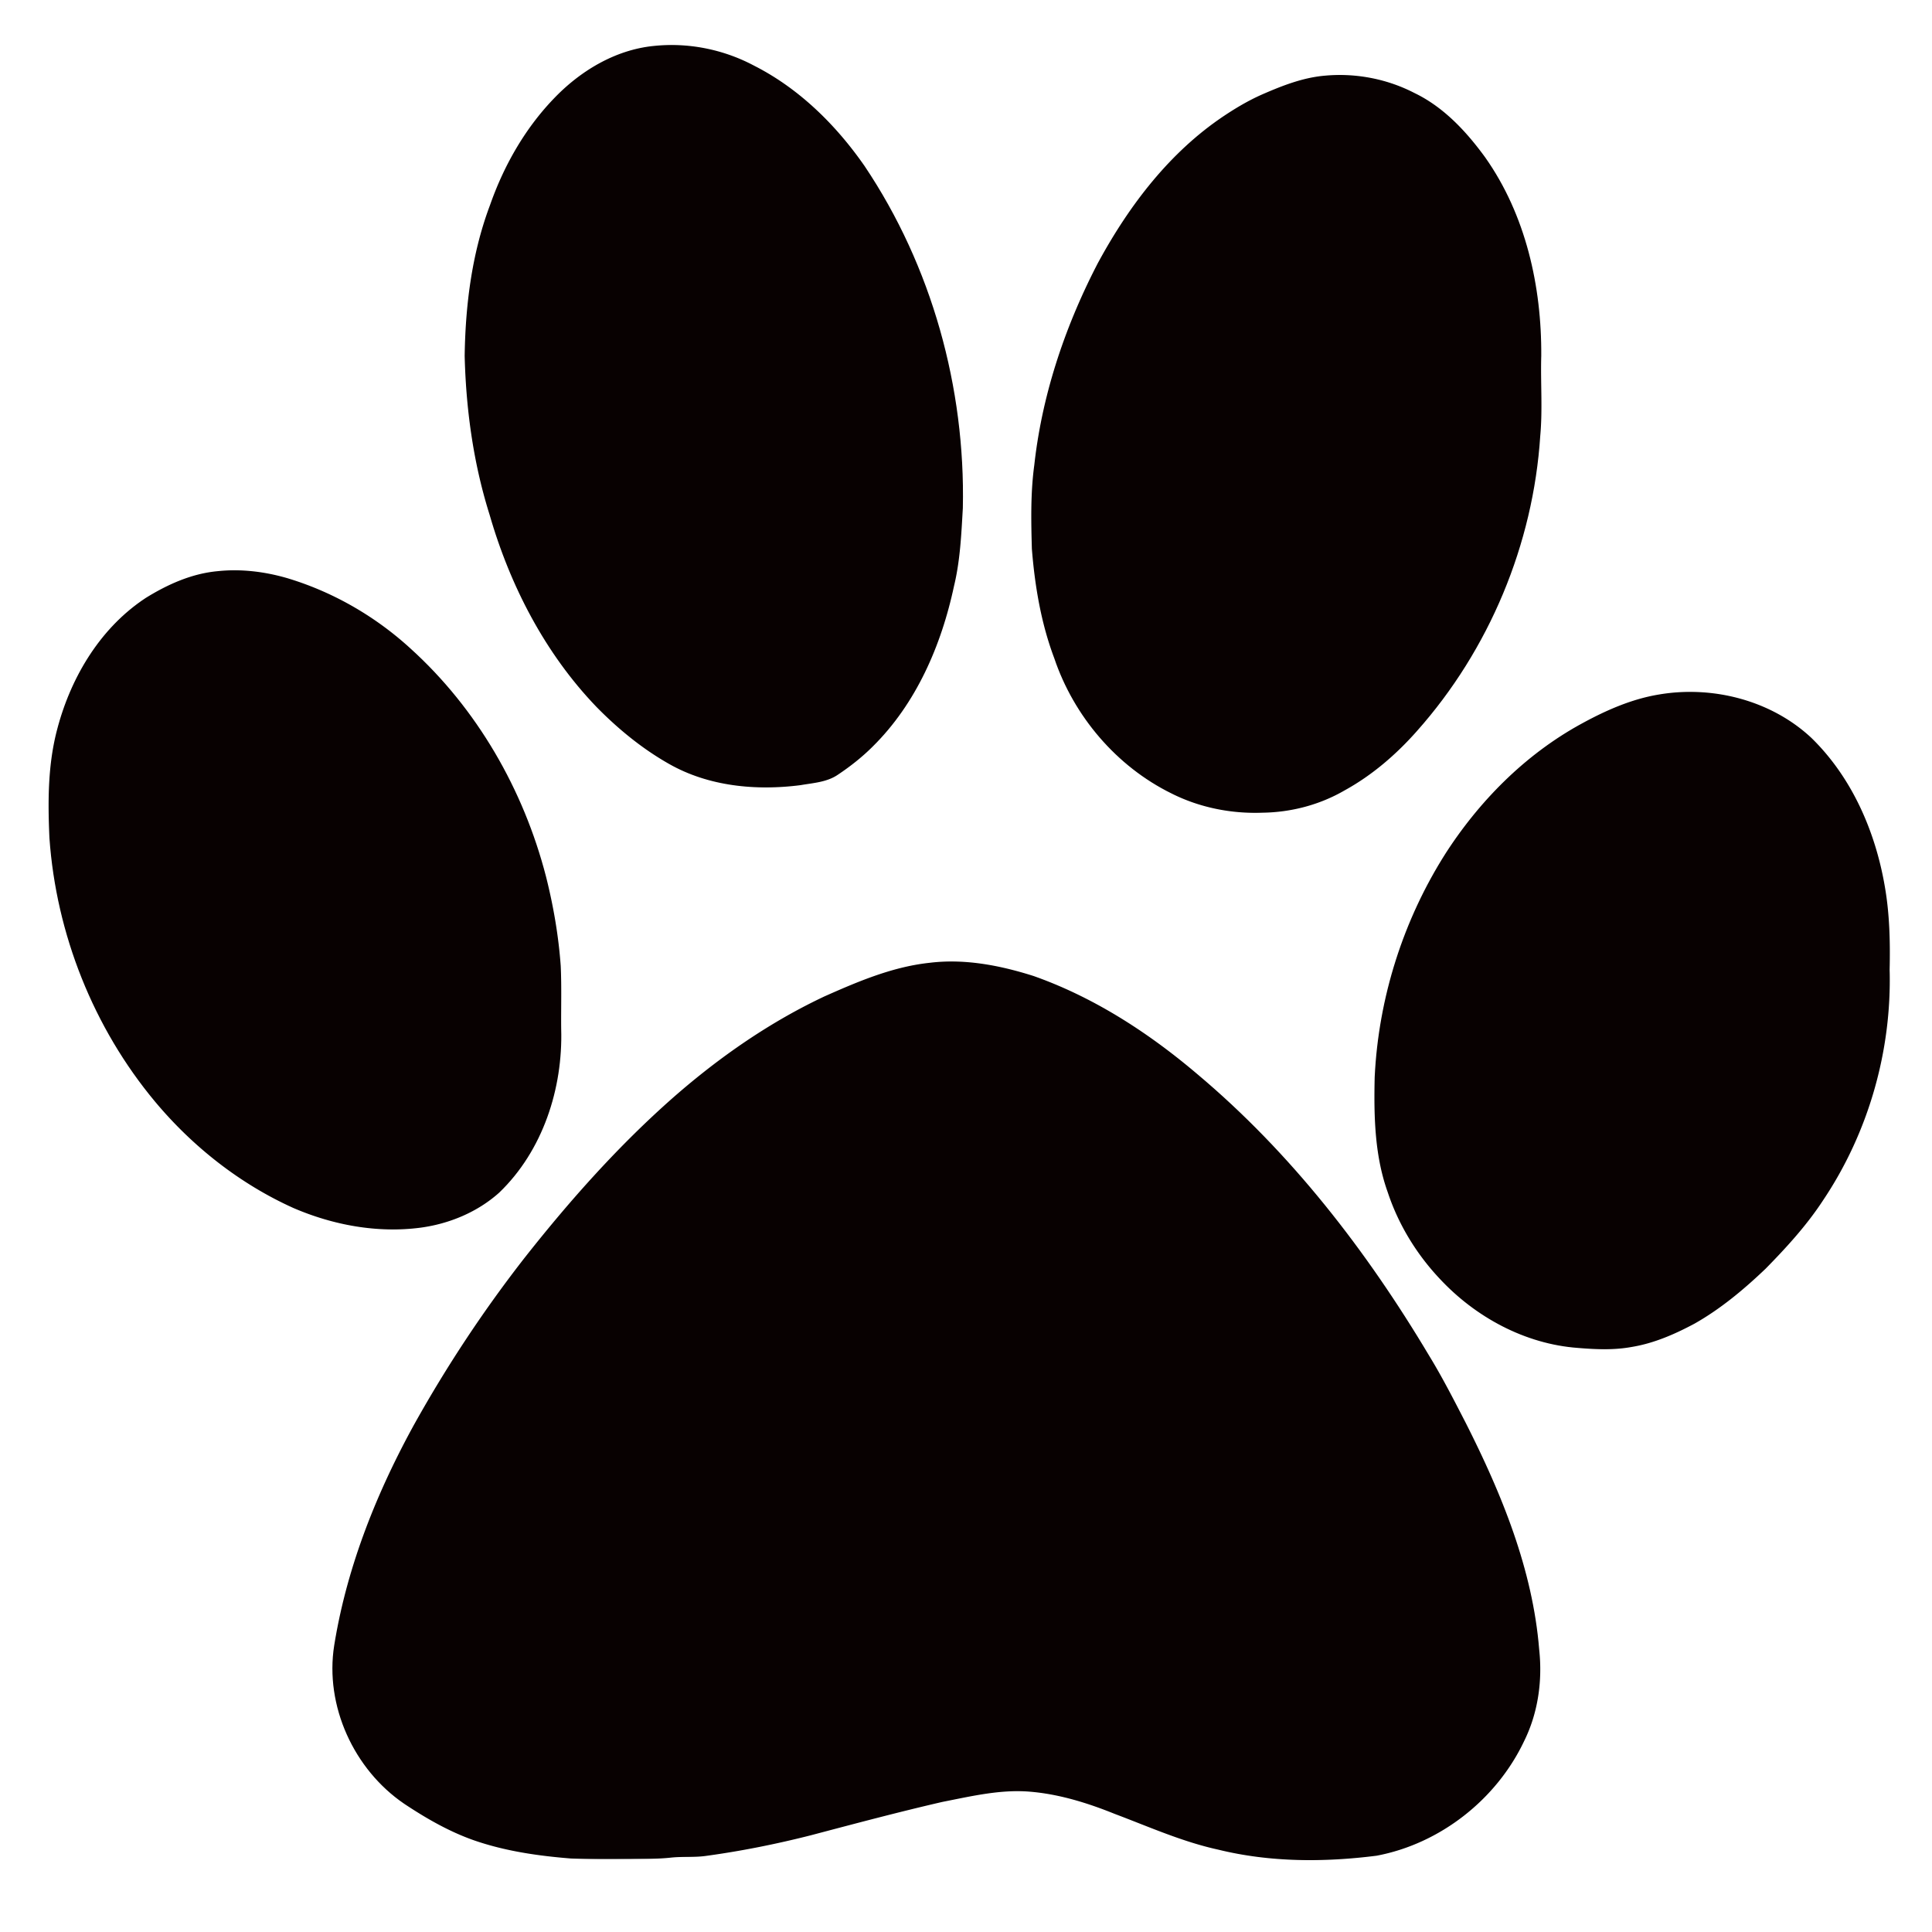 vector transparent download Panther Paw Print Clip Art